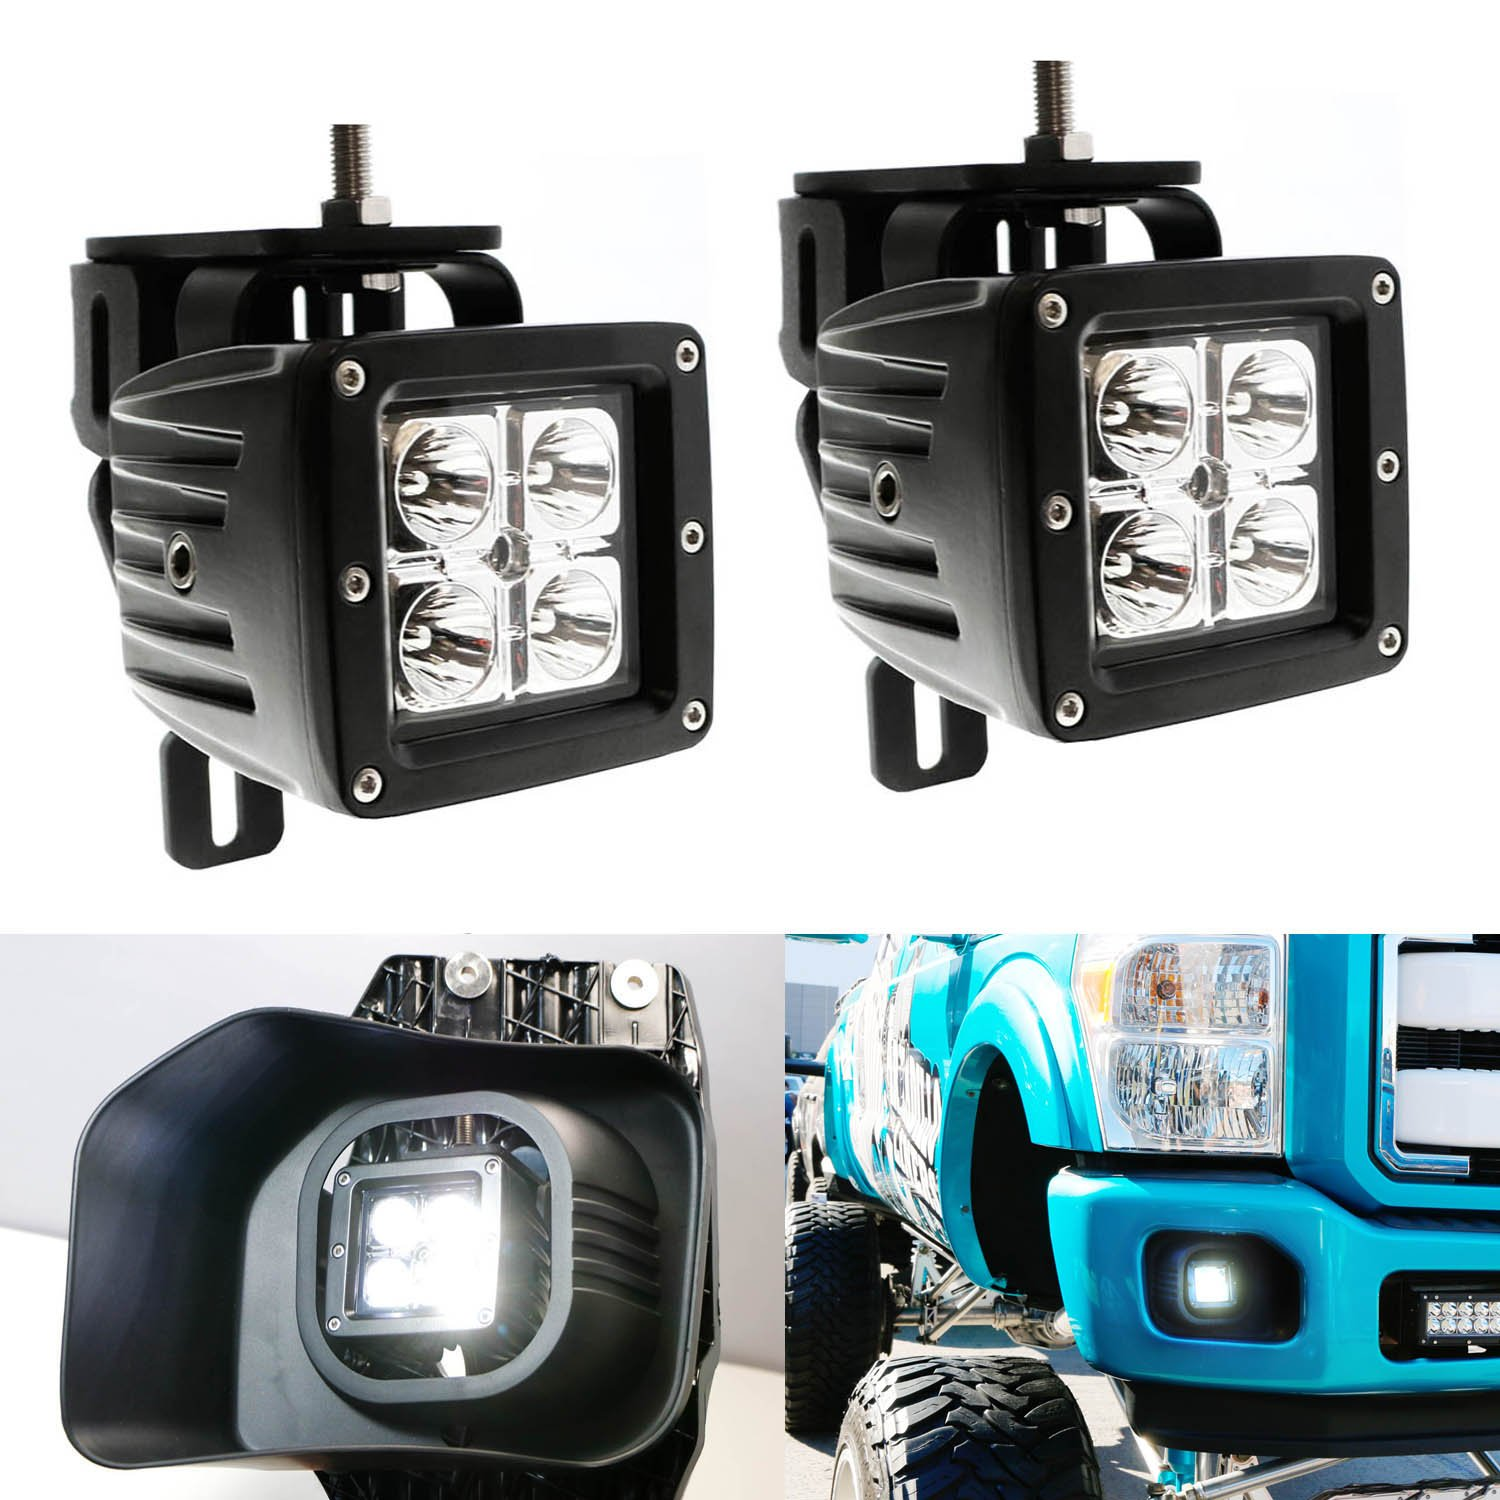 iJDMTOY Complete 40W High Power CREE LED Fog Light Kit w/ Fog Lamp Location Mounting Brackets For 1999-2016 Ford F-250 F-350 F-450 Super Duty